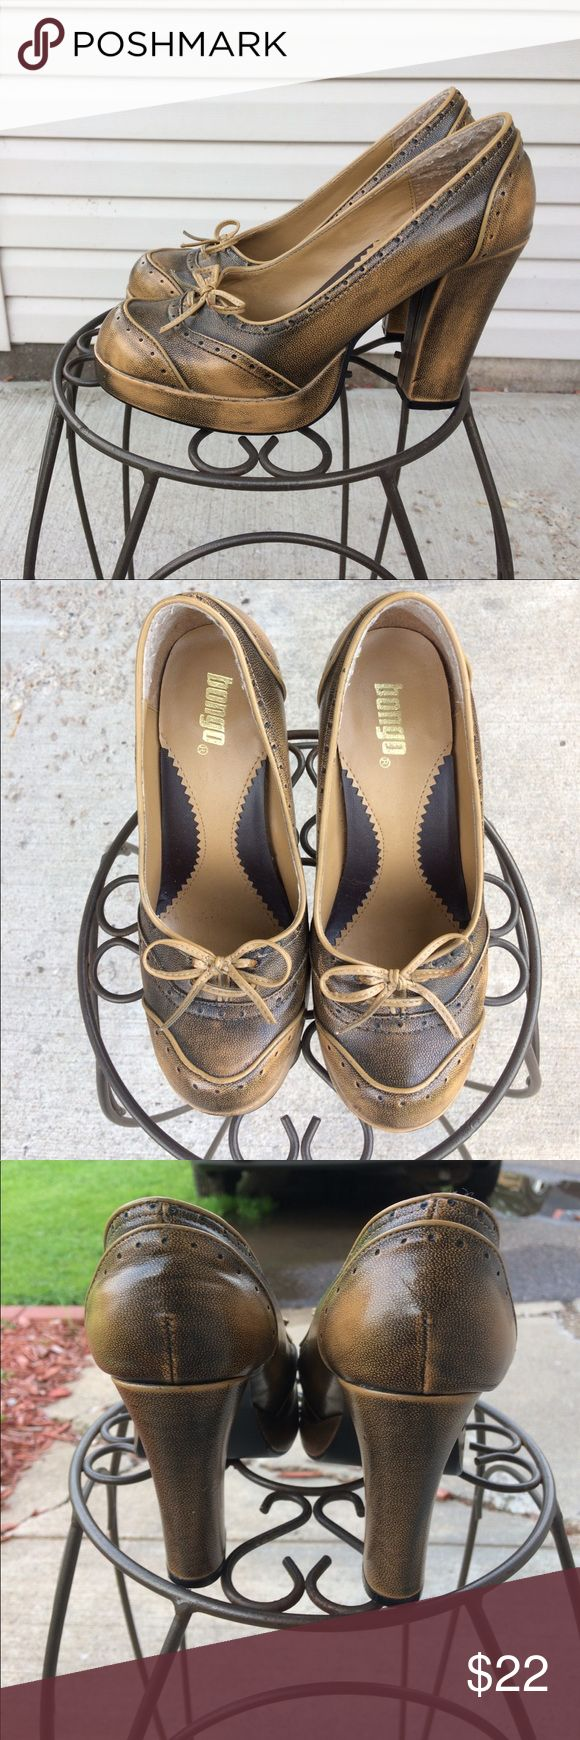 "Bongo Ladies Shoes These are Bongo brand ladies heels. Size 7, fits true to size. Faux leather upper with a 4"" heel. These are in EUC with no visible flaws. Great for the autumn season. Comes from a smoke free home. Please ask if you have any questions! BONGO Shoes Heels"